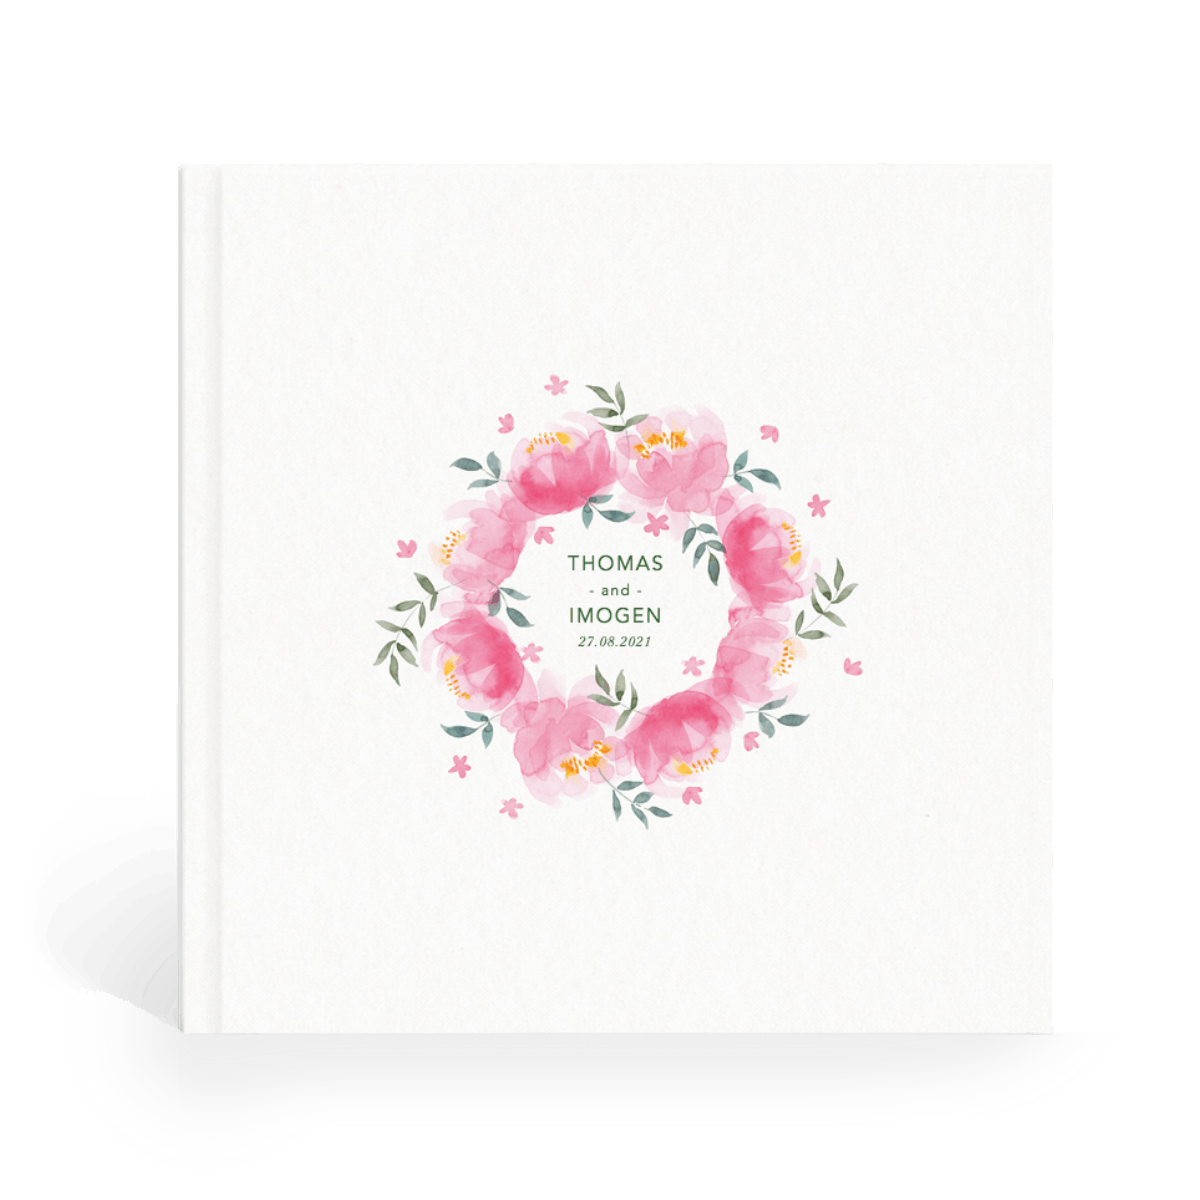 Https%3a%2f%2fwww.papier.com%2fproduct image%2f44622%2f32%2fpeonies 11192 front 1535727954.png?ixlib=rb 1.1